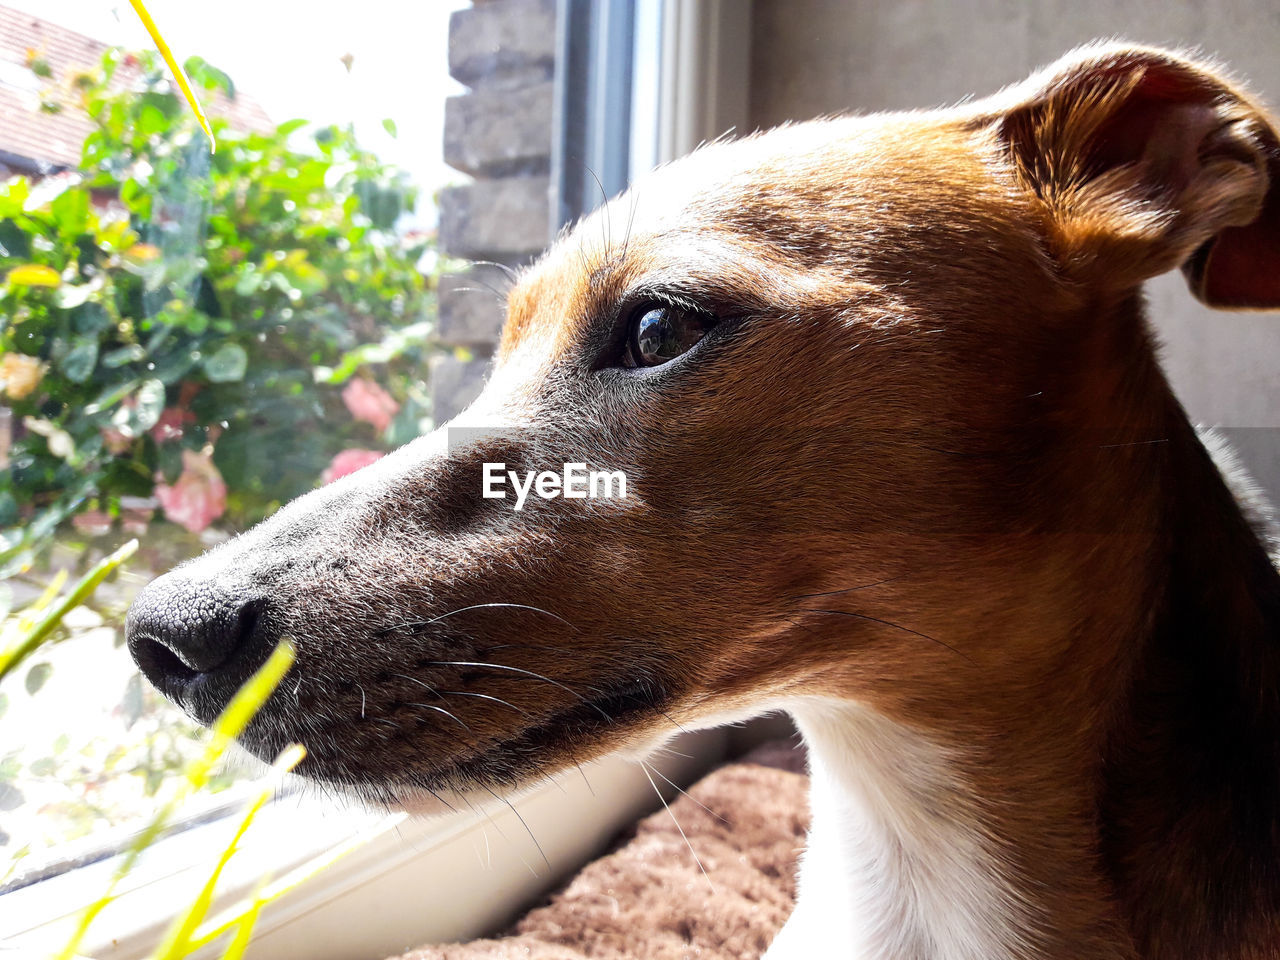 one animal, animal themes, animal, mammal, domestic animals, canine, dog, vertebrate, pets, domestic, close-up, looking, looking away, animal body part, day, animal head, no people, outdoors, brown, side view, profile view, jack russell terrier, snout, whisker